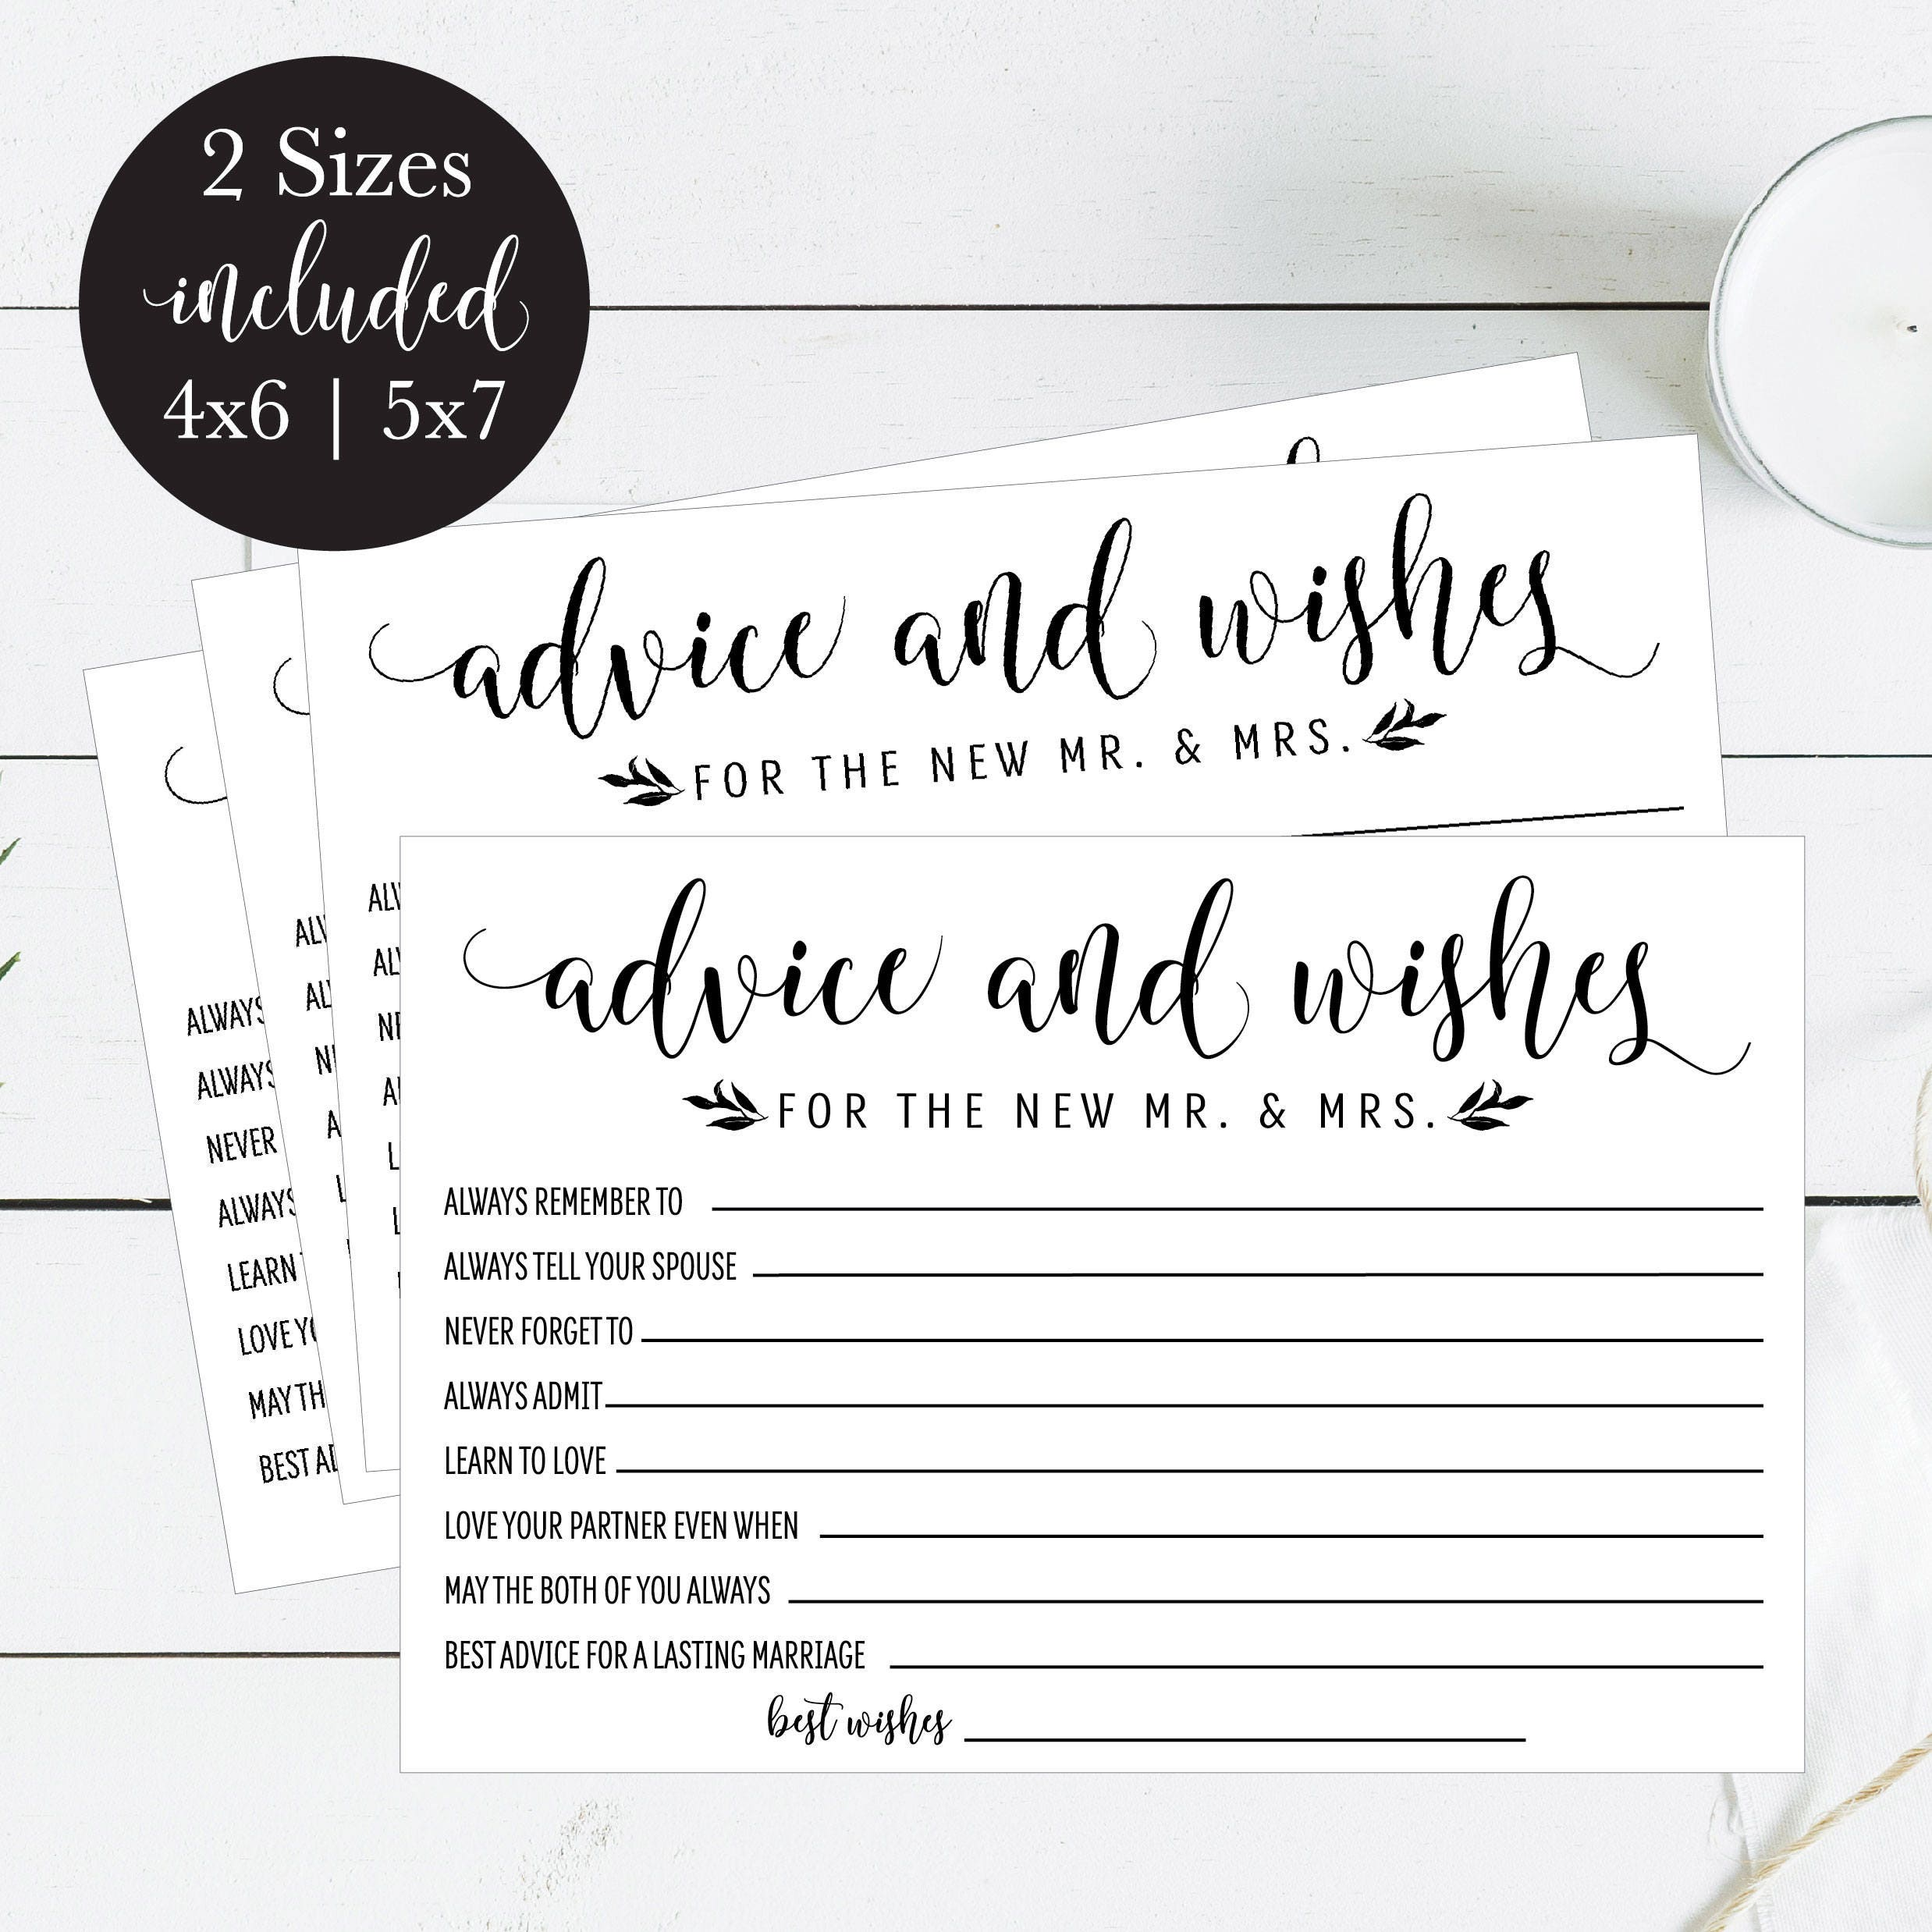 Words of Wisdom Printable Wedding Cards Guest Book Idea